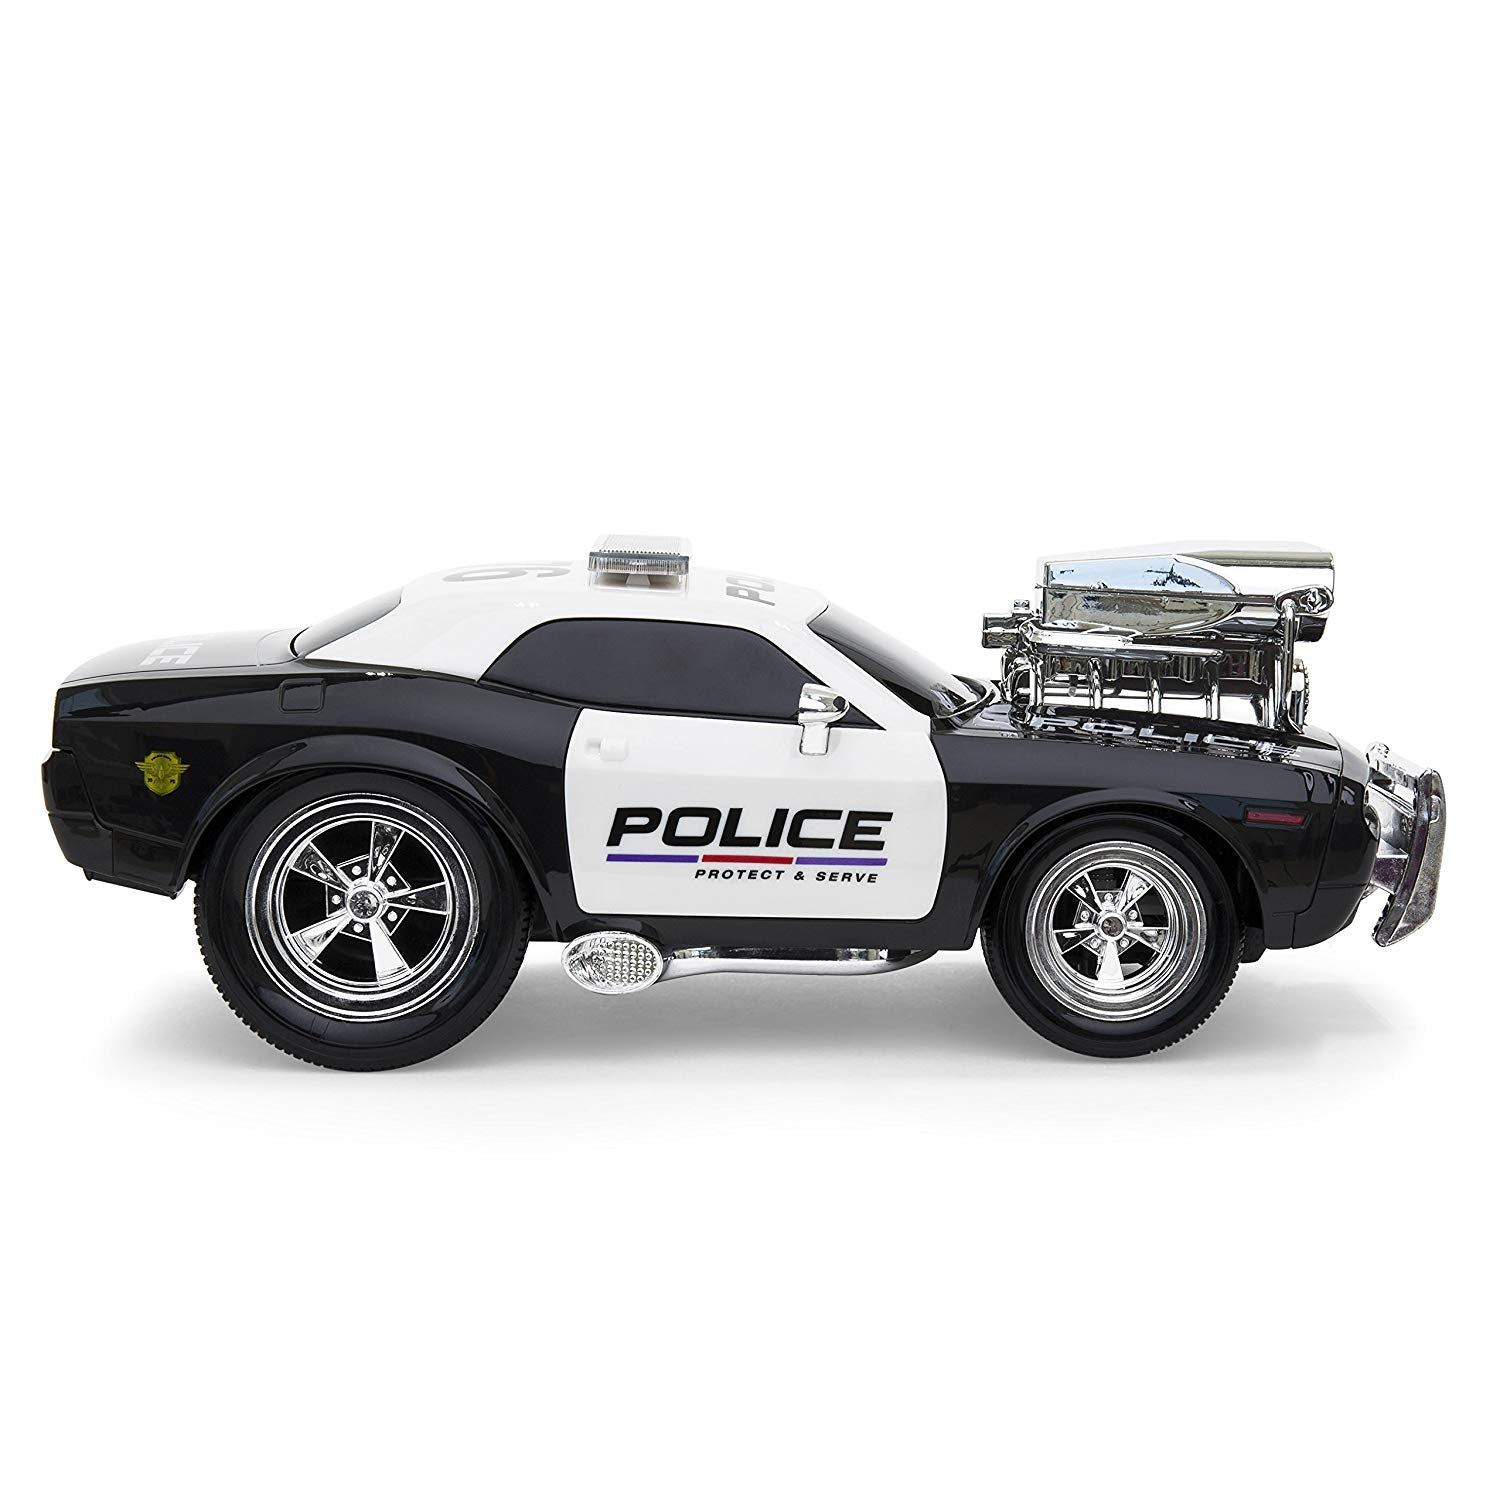 2.4GHz Remote Control Police Car w/ Lights, Rechargeable Batteries, USB Cable - Black